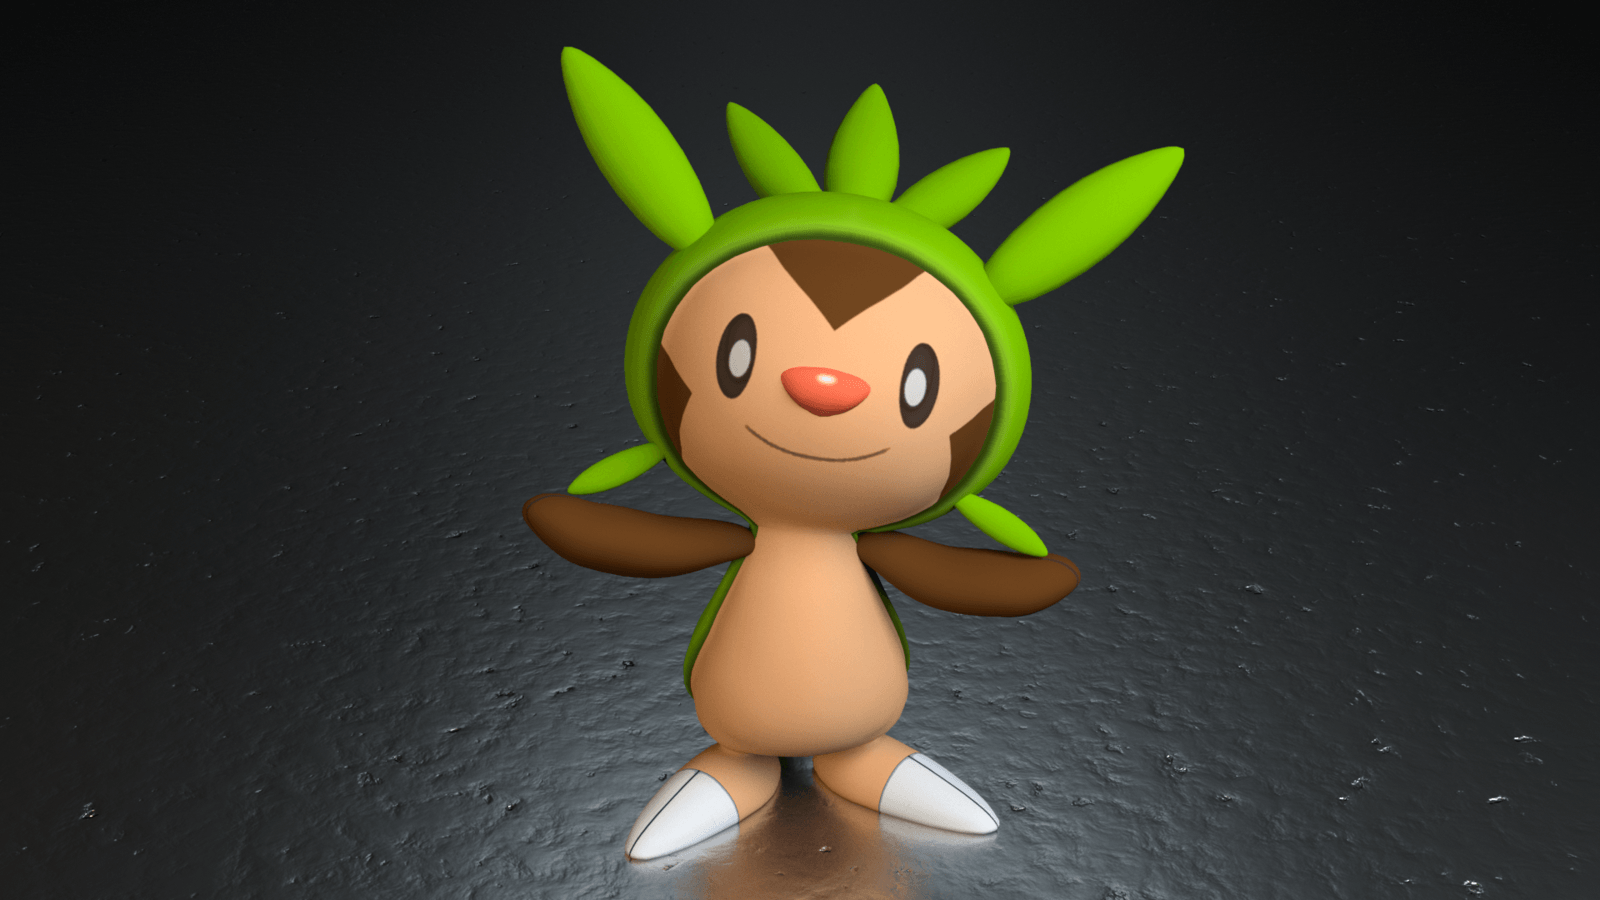 650. Chespin by TheAdorableOshawott on DeviantArt